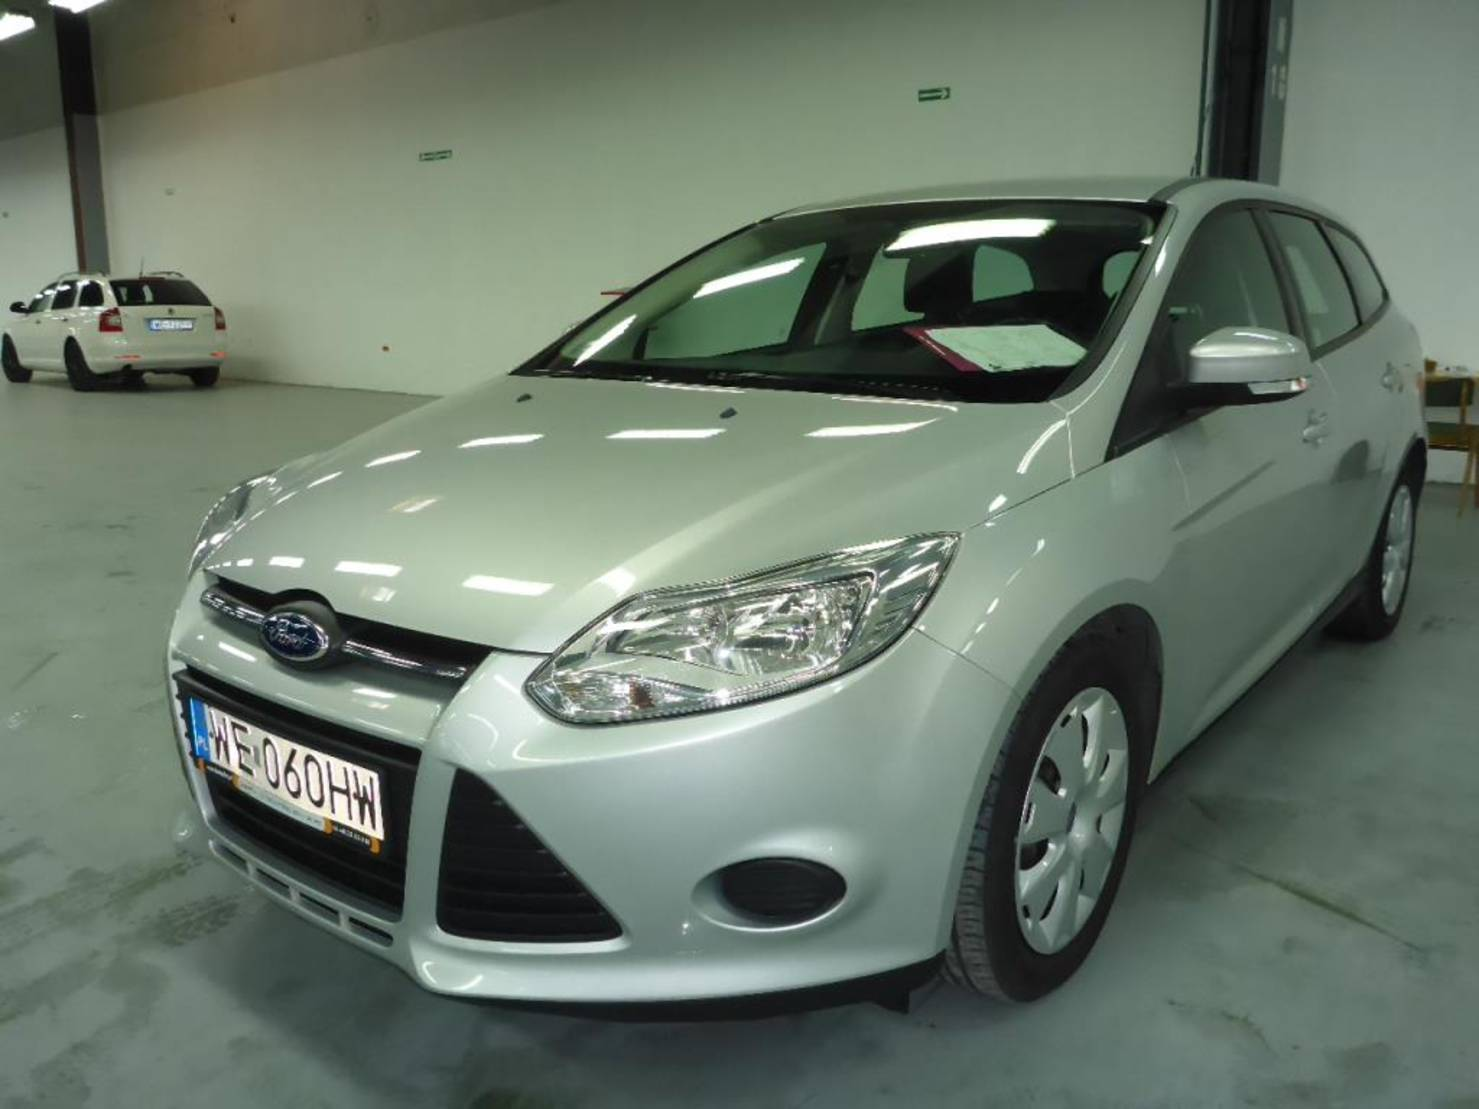 Ford Focus Turnier 1.6 TDCi DPF, Trend detail1